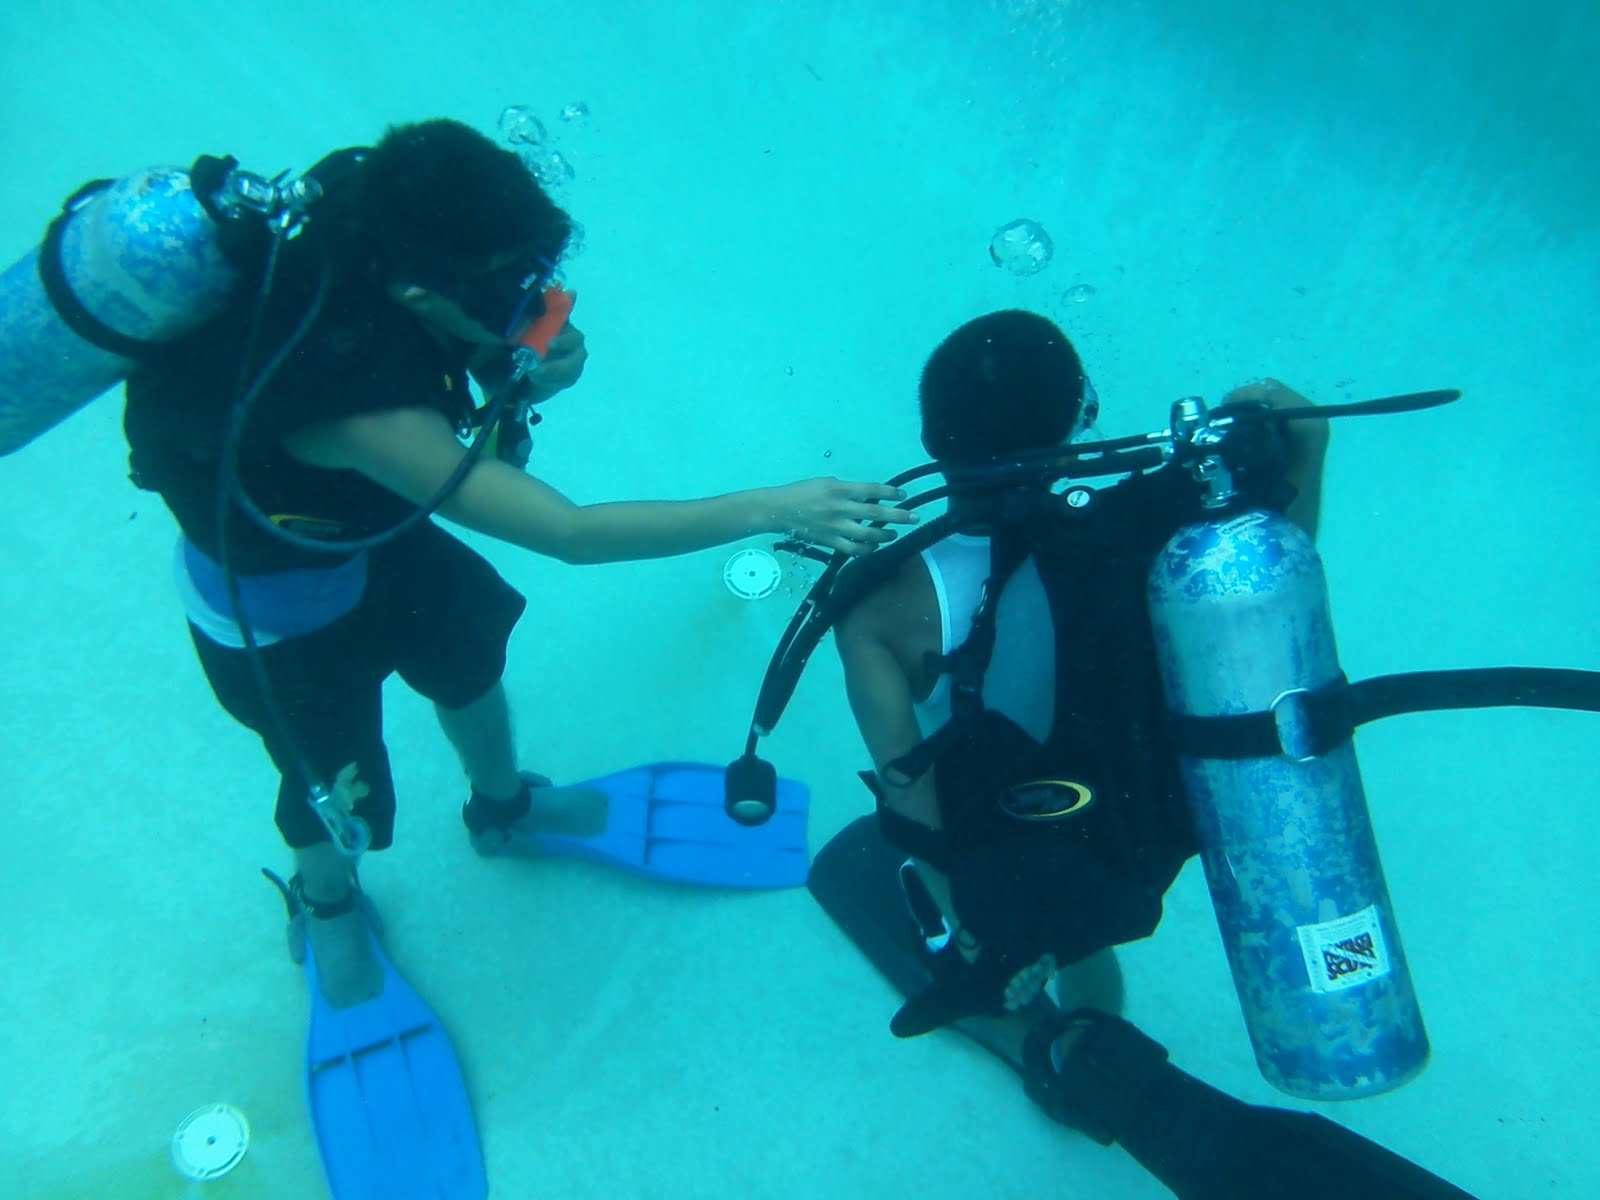 the sure ways of becoming a certified scuba diver Becoming a certified scuba diver means that you have learned and developed the skills that you need to stay safe while having fun under water ask what the price includes, so you have a way of making an apples-to-apples comparison a visit to your local dive center can also provide you with.